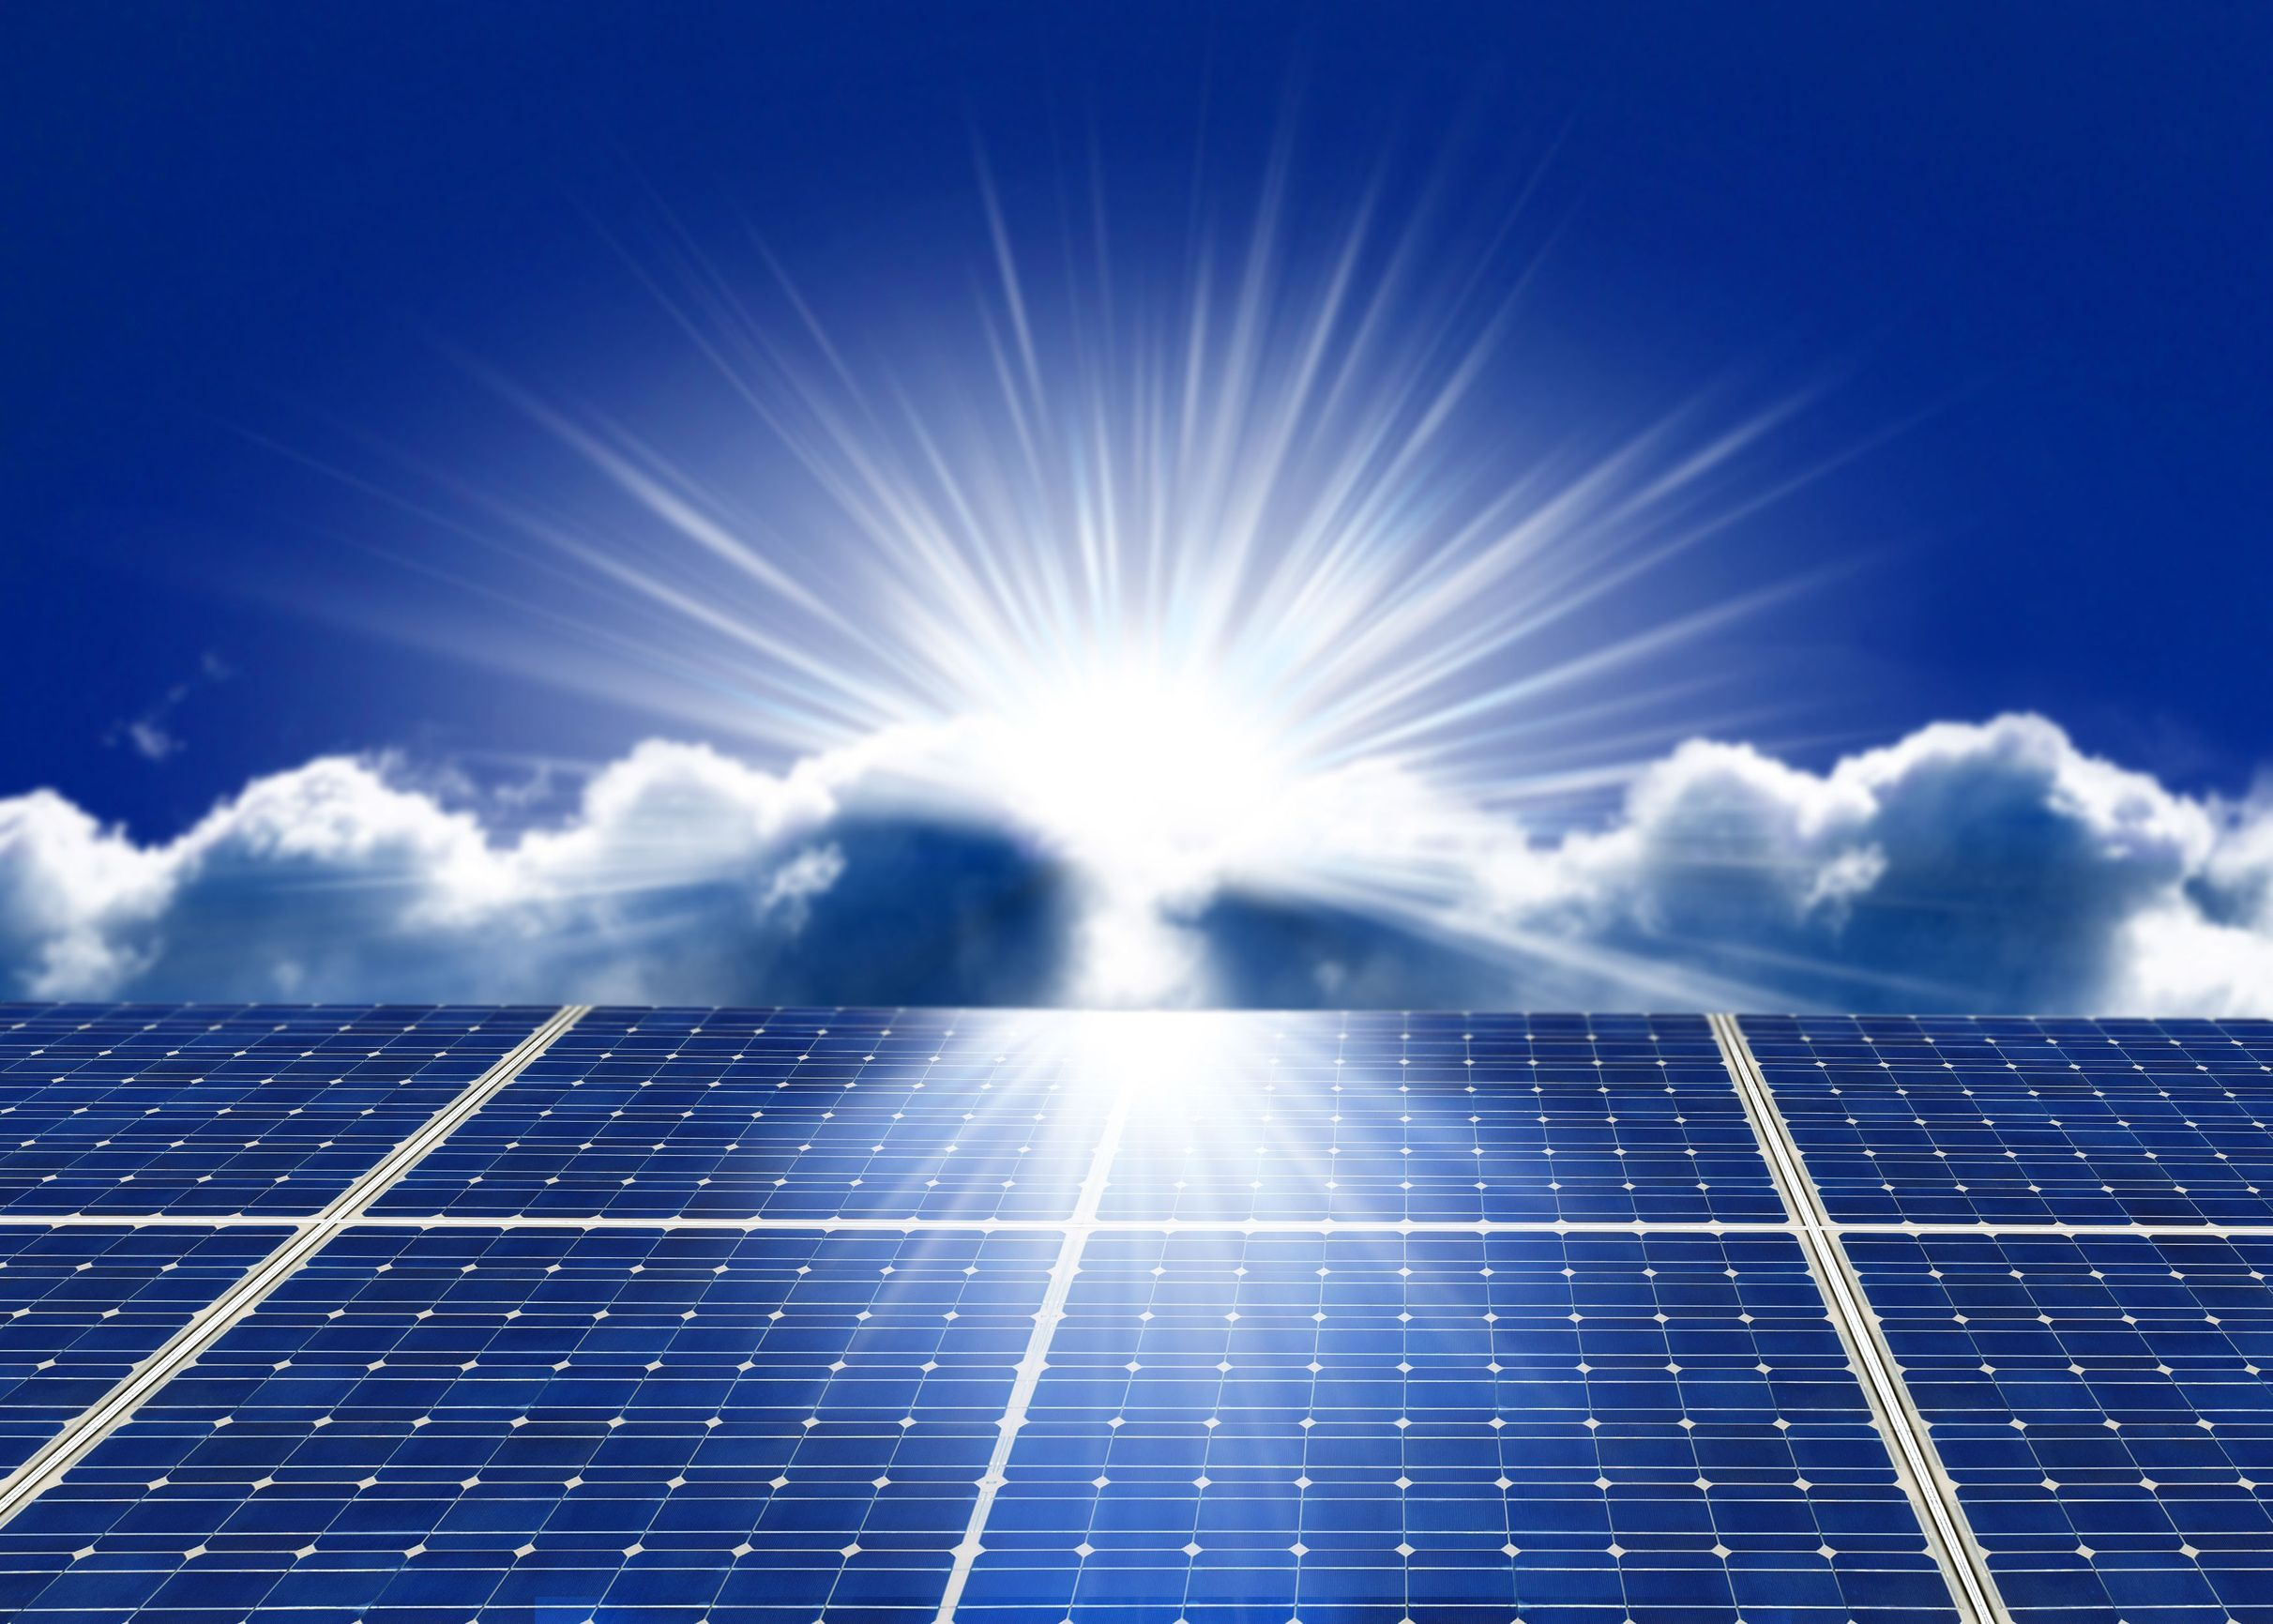 Solarpowersysteminlucknow The Services Offered By Aspiring Energy Is Expanding With Its Vast Experience In The Field Of Solar Panels Solar Installation Solar